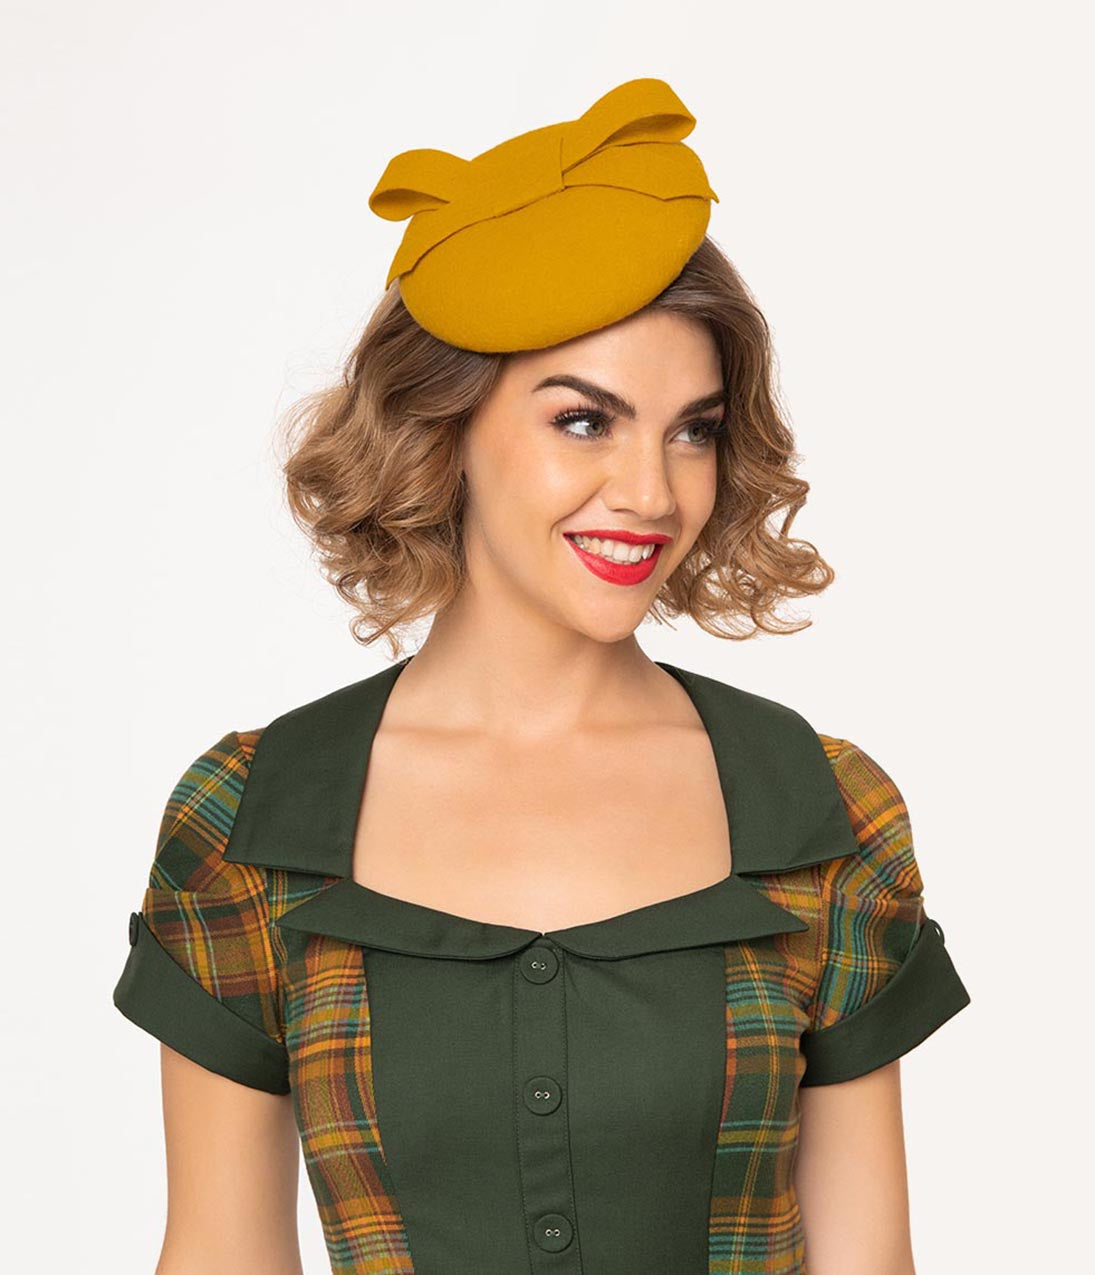 1950s Women's Hat Styles & History Vintage Style Mustard Yellow Bow Round Fascinator $90.00 AT vintagedancer.com